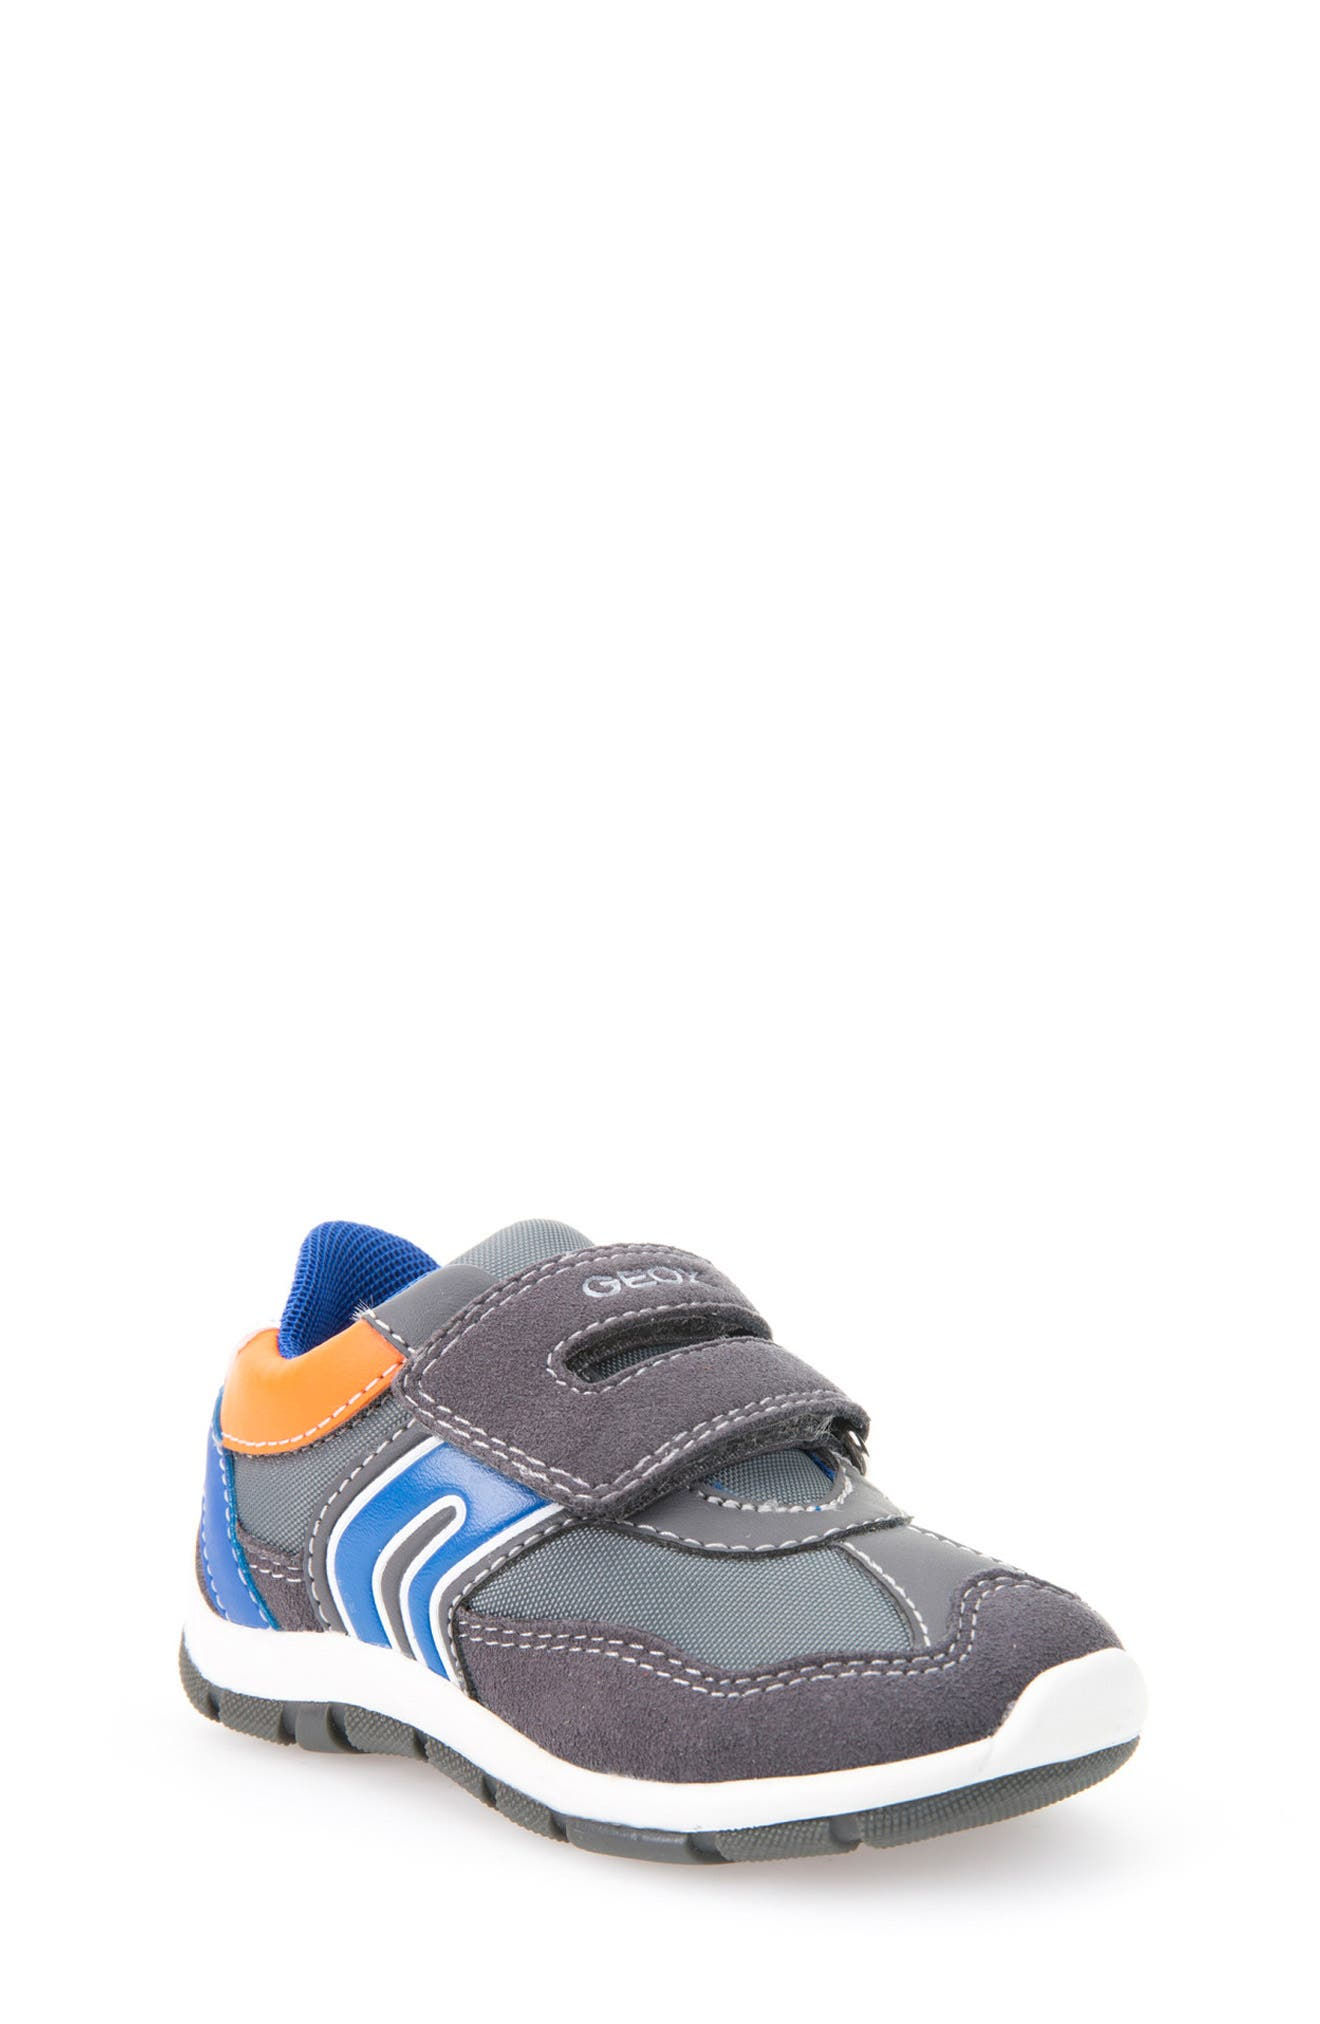 Main Image - Geox Shaax Sneaker (Walker & Toddler)